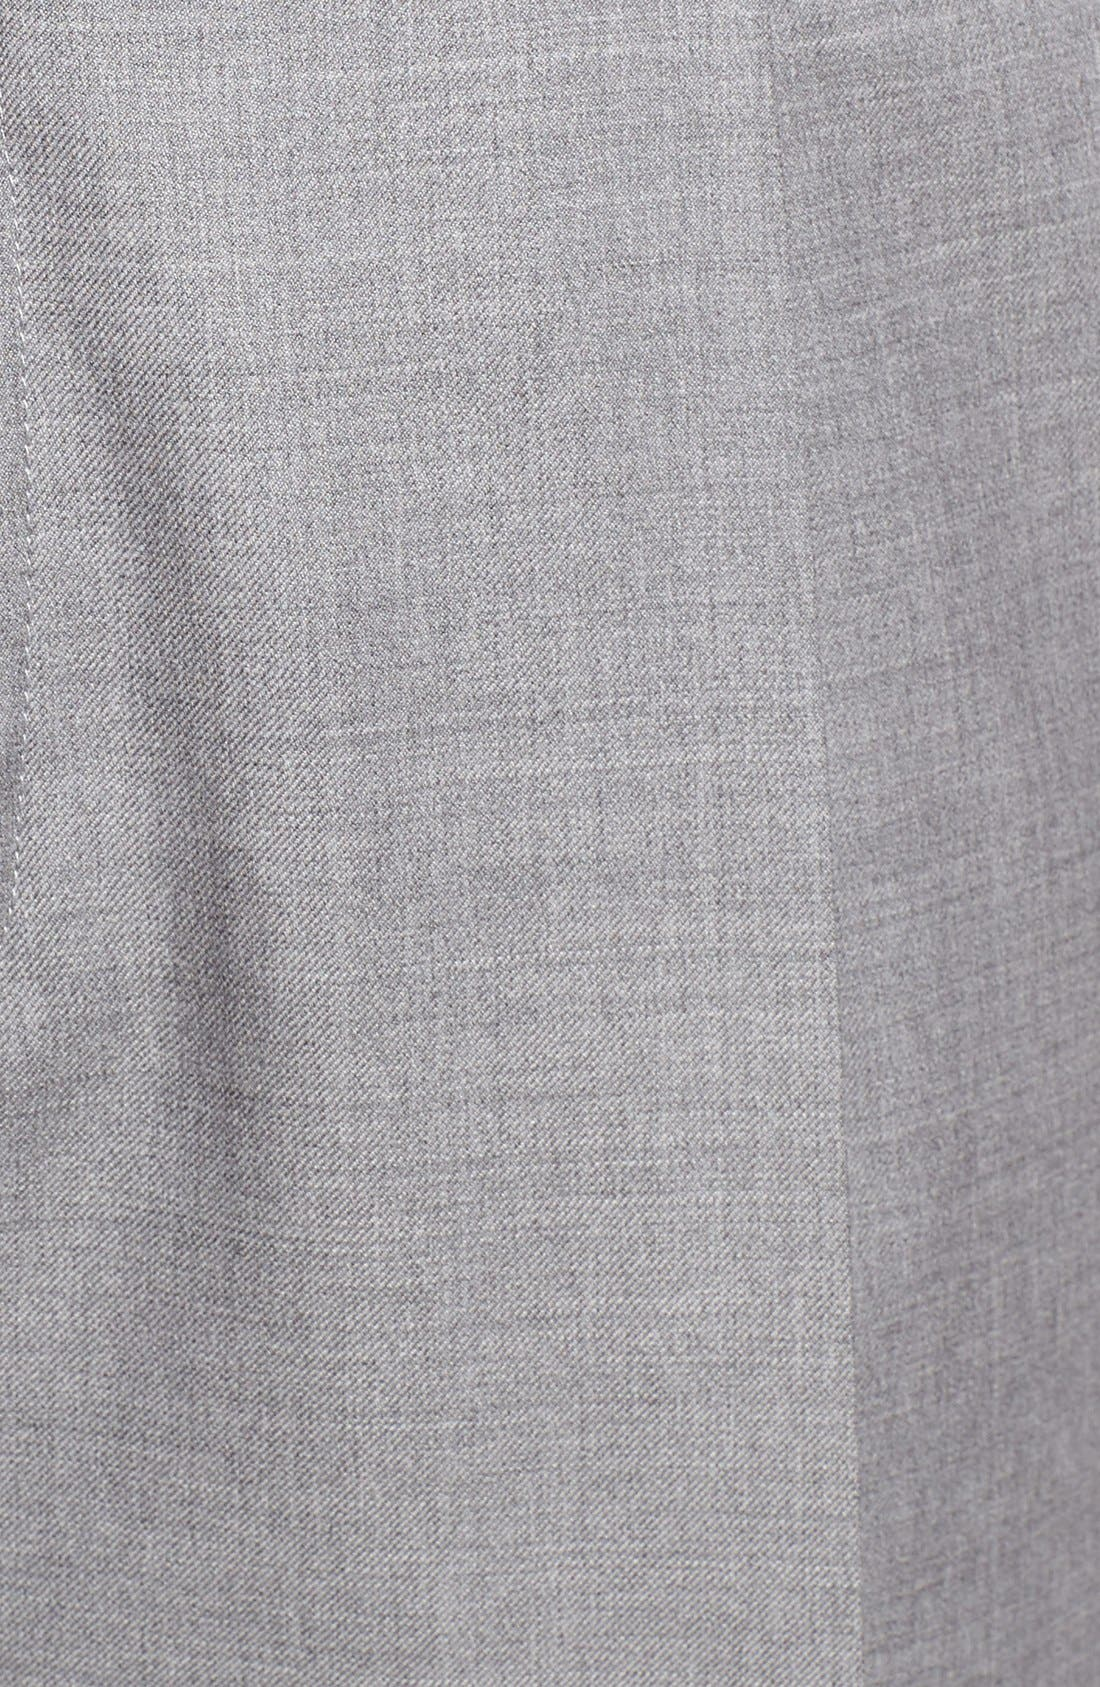 Pleated Solid Wool Trousers,                             Alternate thumbnail 2, color,                             Light Grey